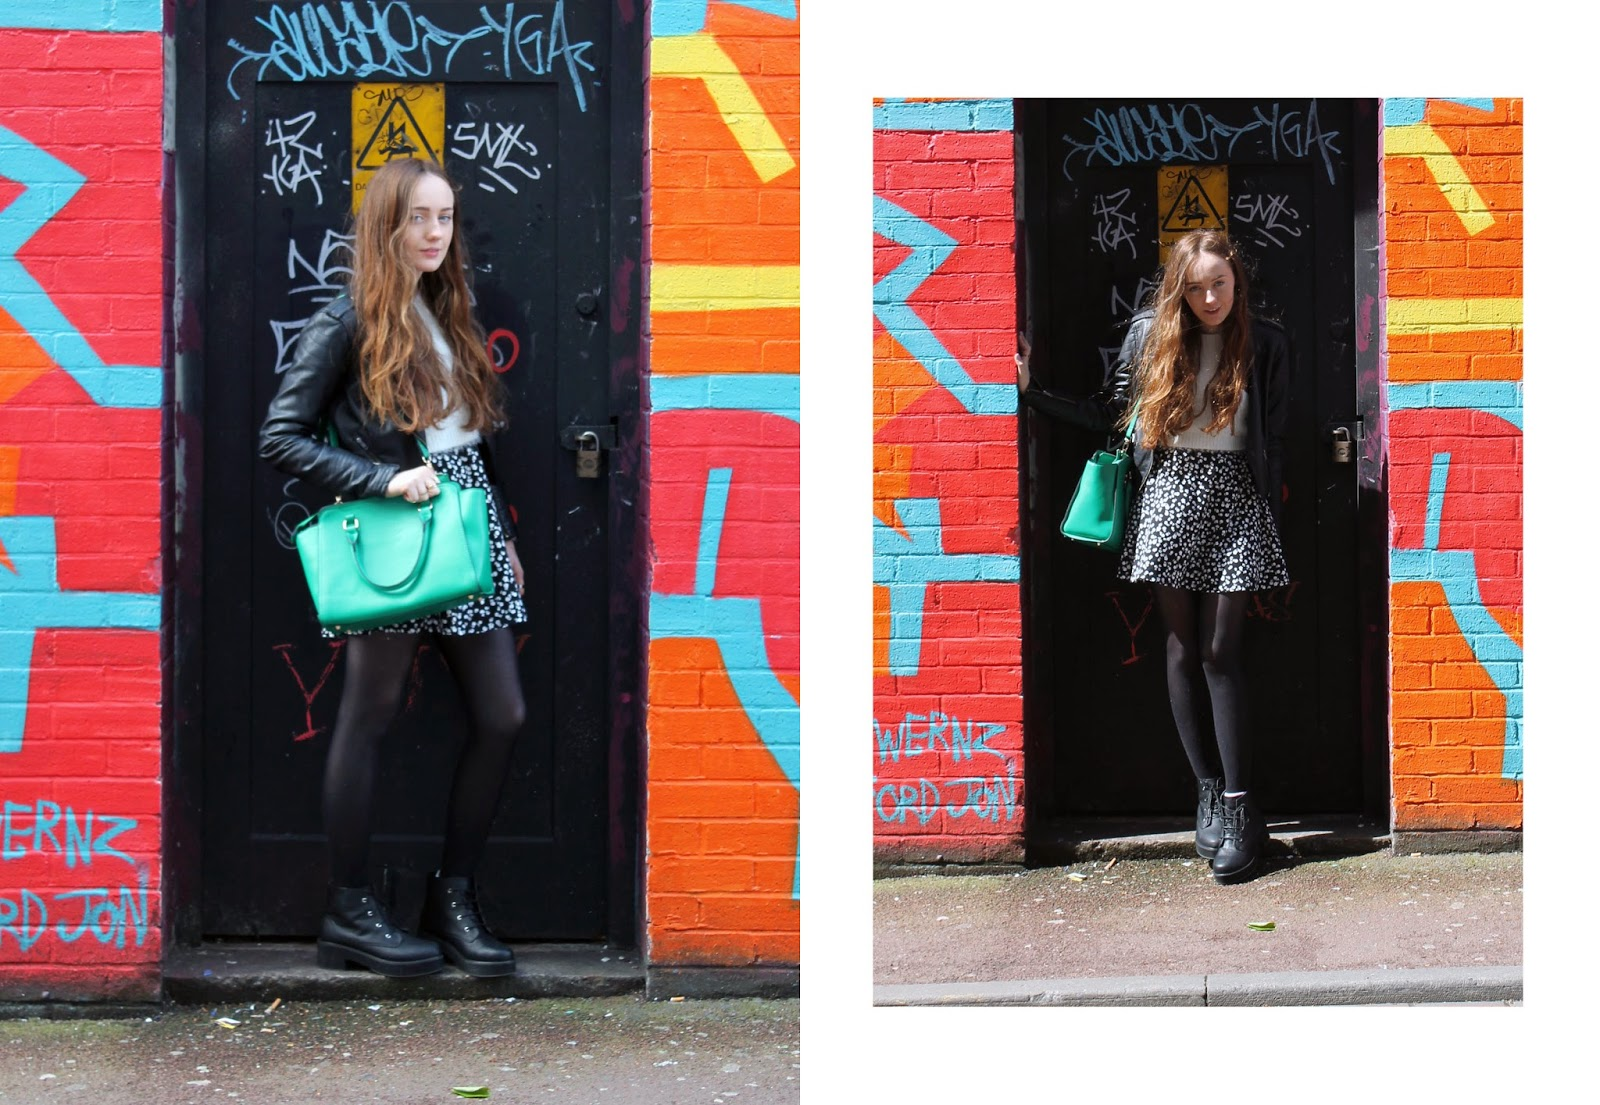 OOTD, outfit of the day, outfit photo against graffiti wall, manchester street art, northern quarter, georgia green winged accessorize handbag